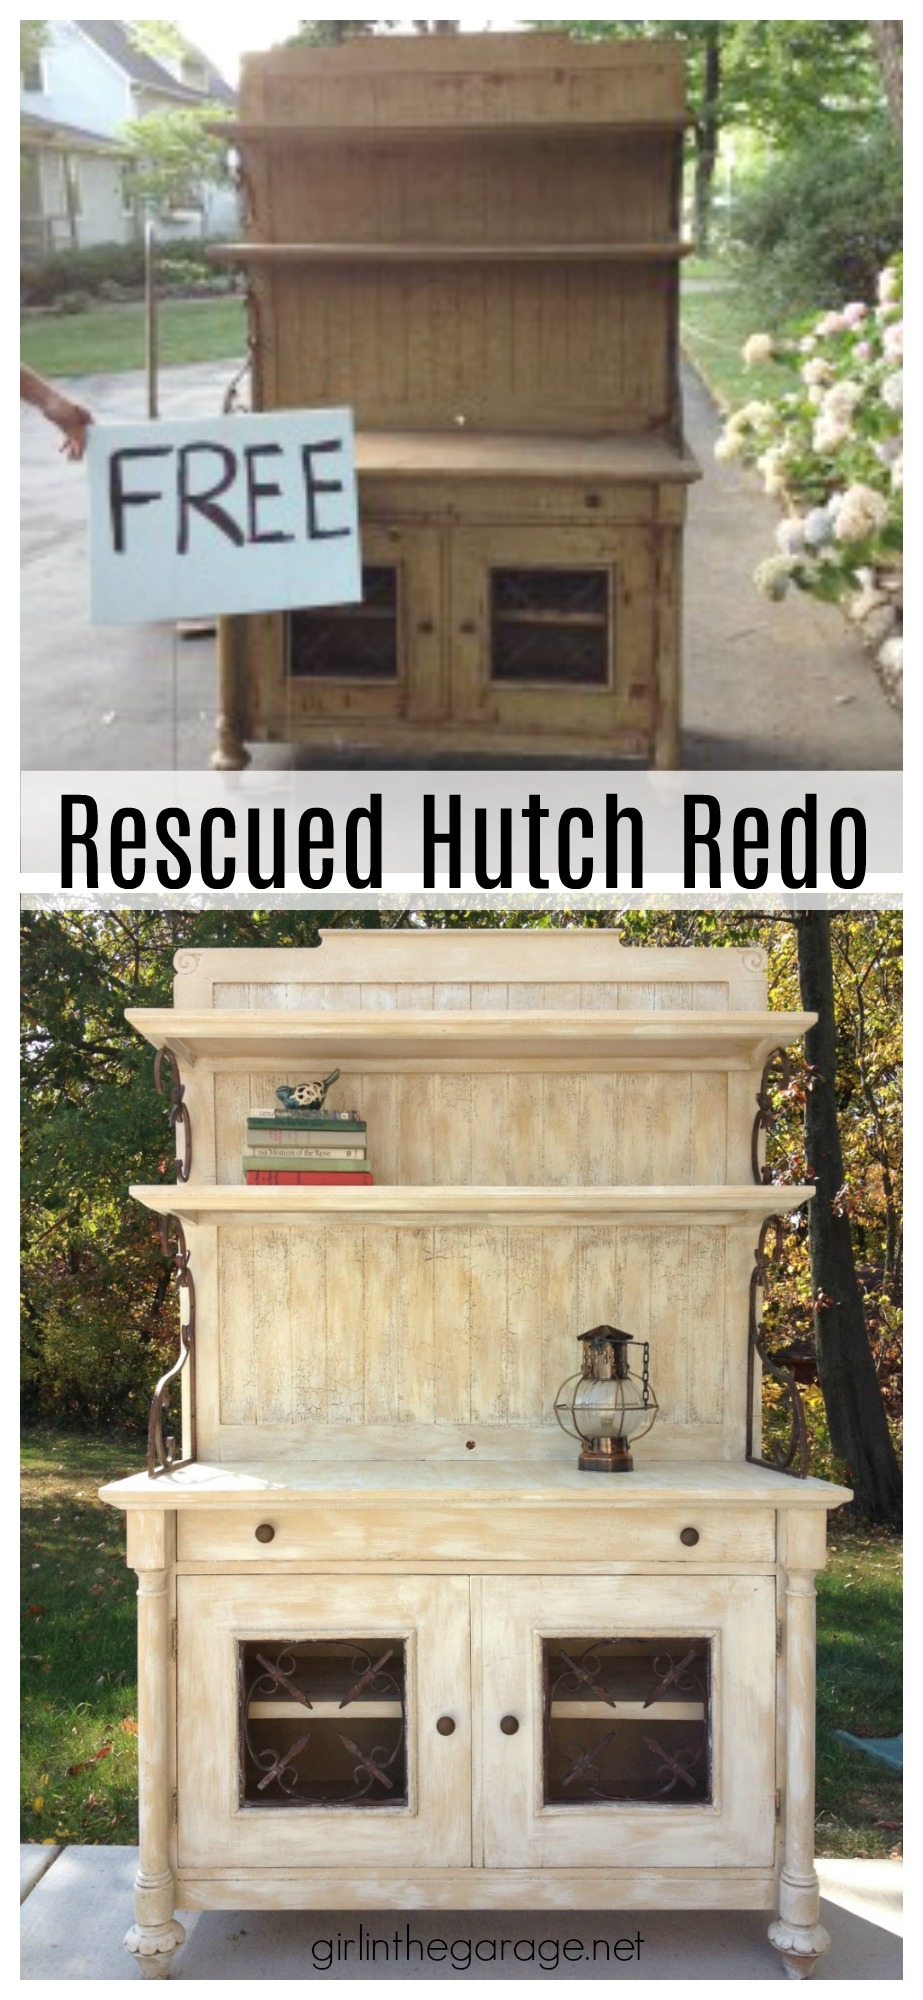 Roadside hutch makeover, rescued and restored - DIY furniture makeover tips and tricks by Girl in the Garage